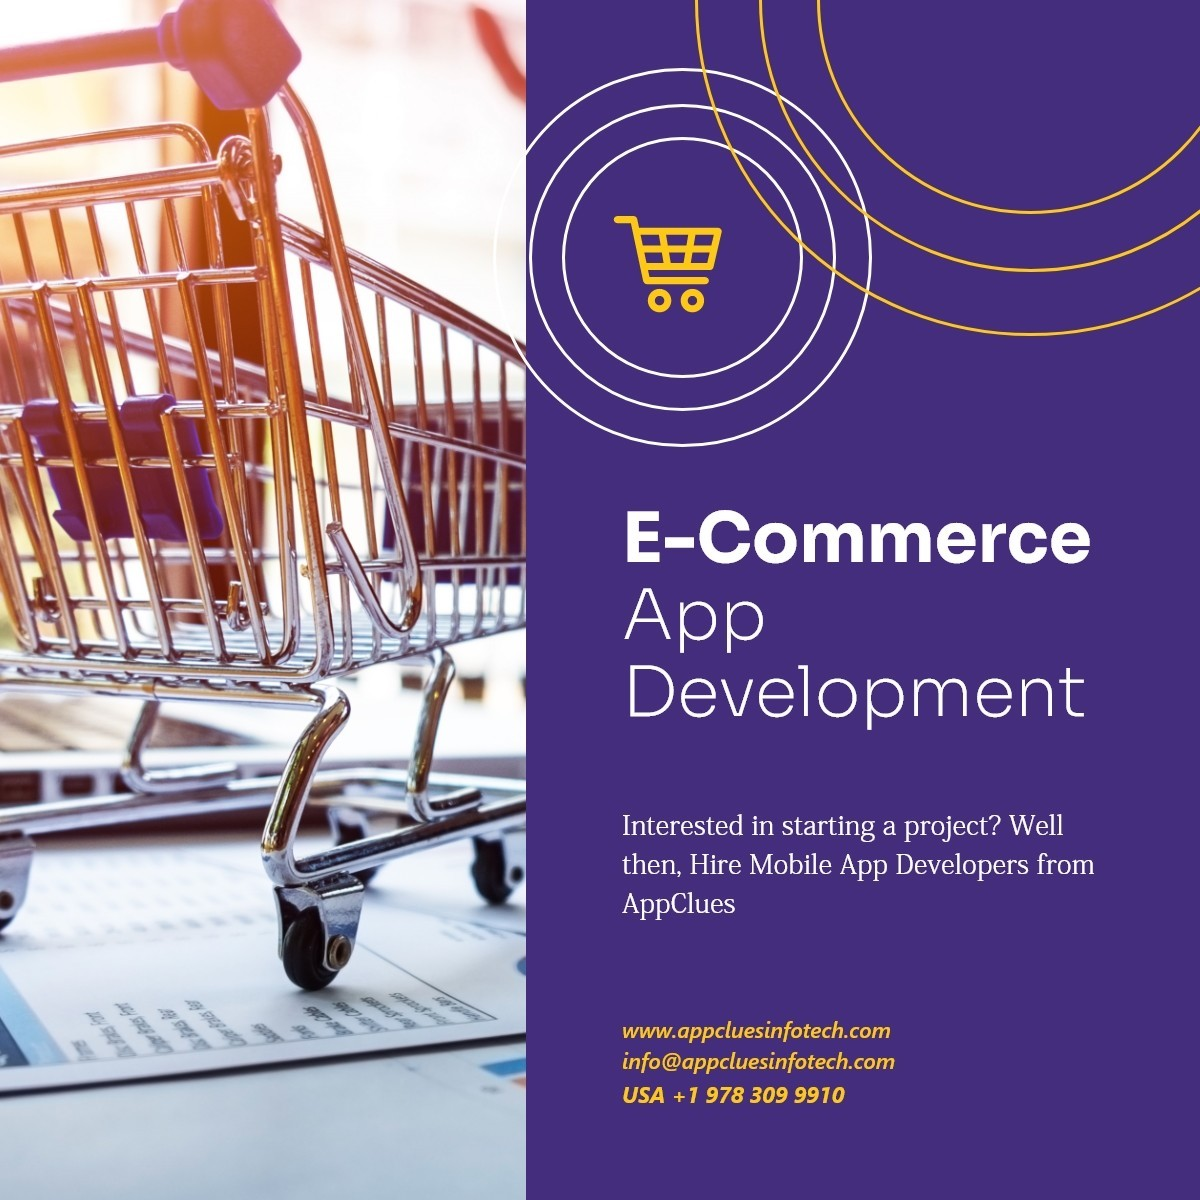 Top E-Commerce App Development Company in USA